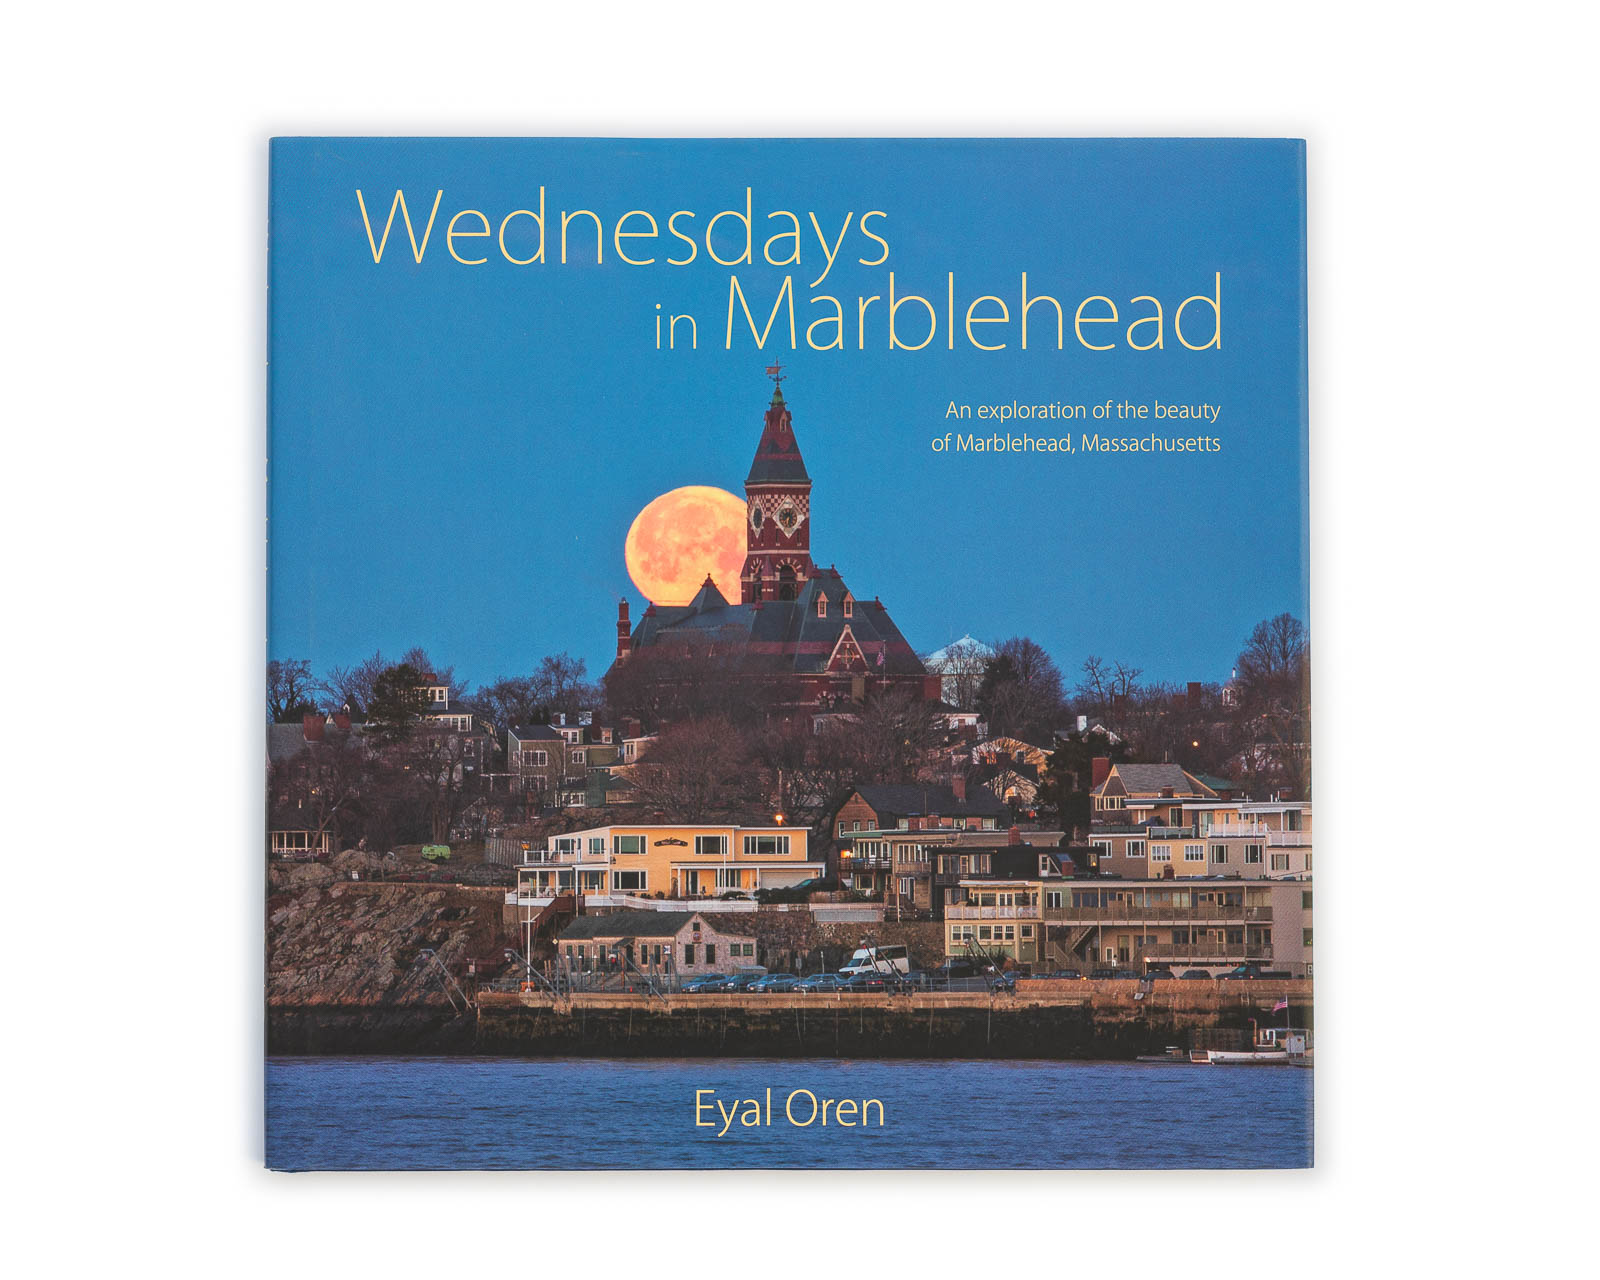 Wednesdays in Marblehead Book